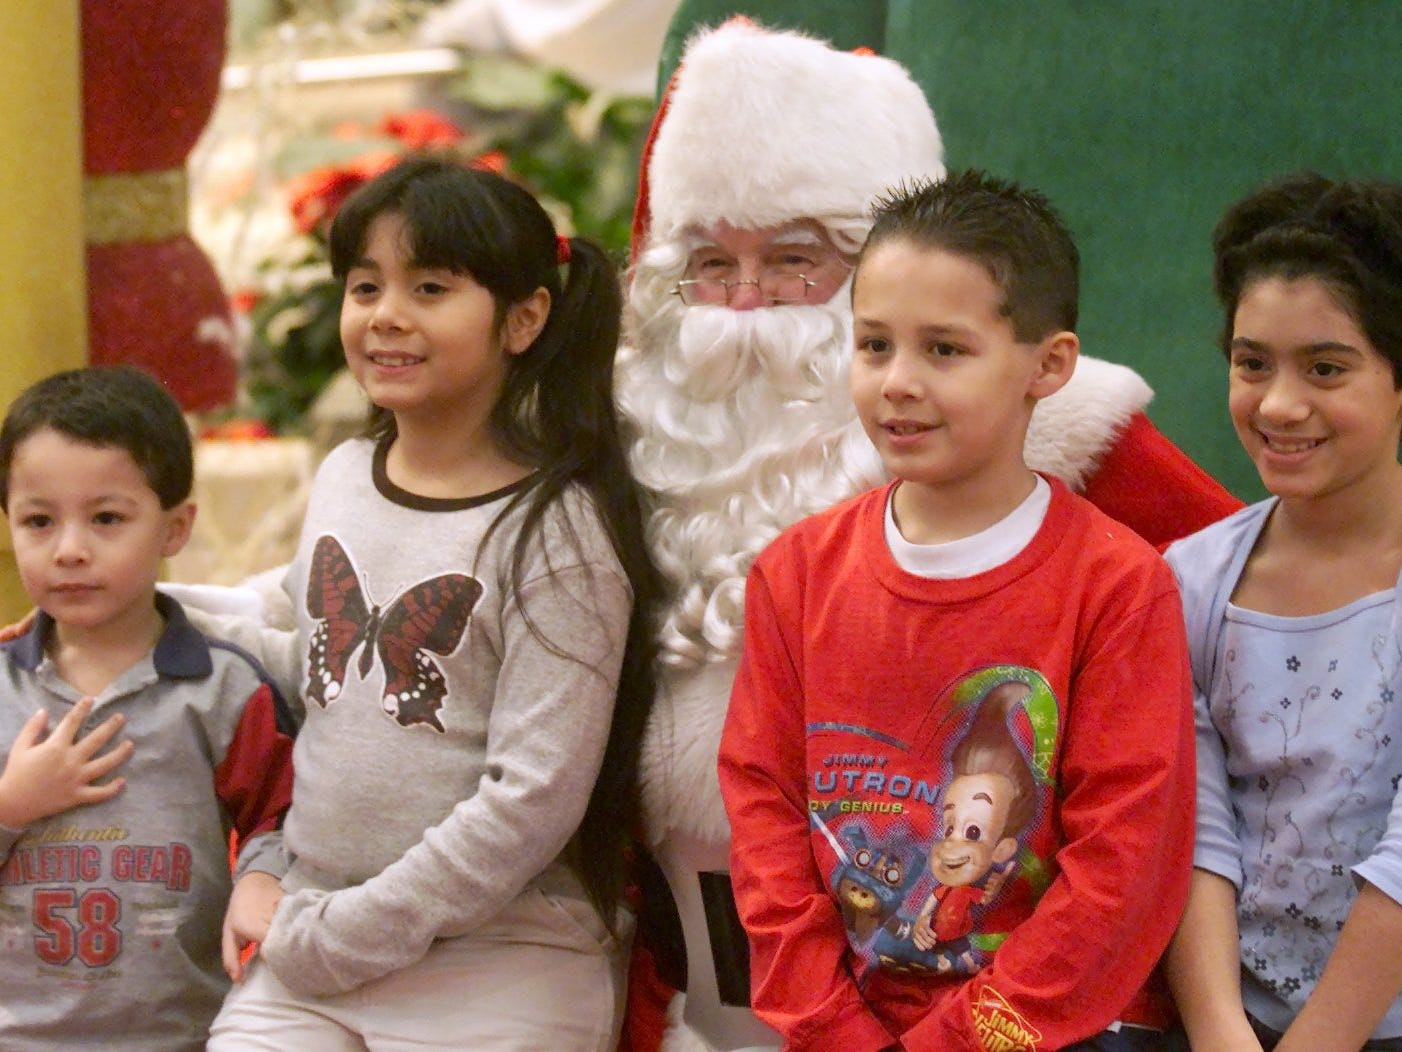 he children of the Tuyul family of Elmira, from left, Joshua, 3, Nicole, 8, Alex, 8, and Anastasia, 10, pose with Santa Clause on Monday at the mall in 2002.